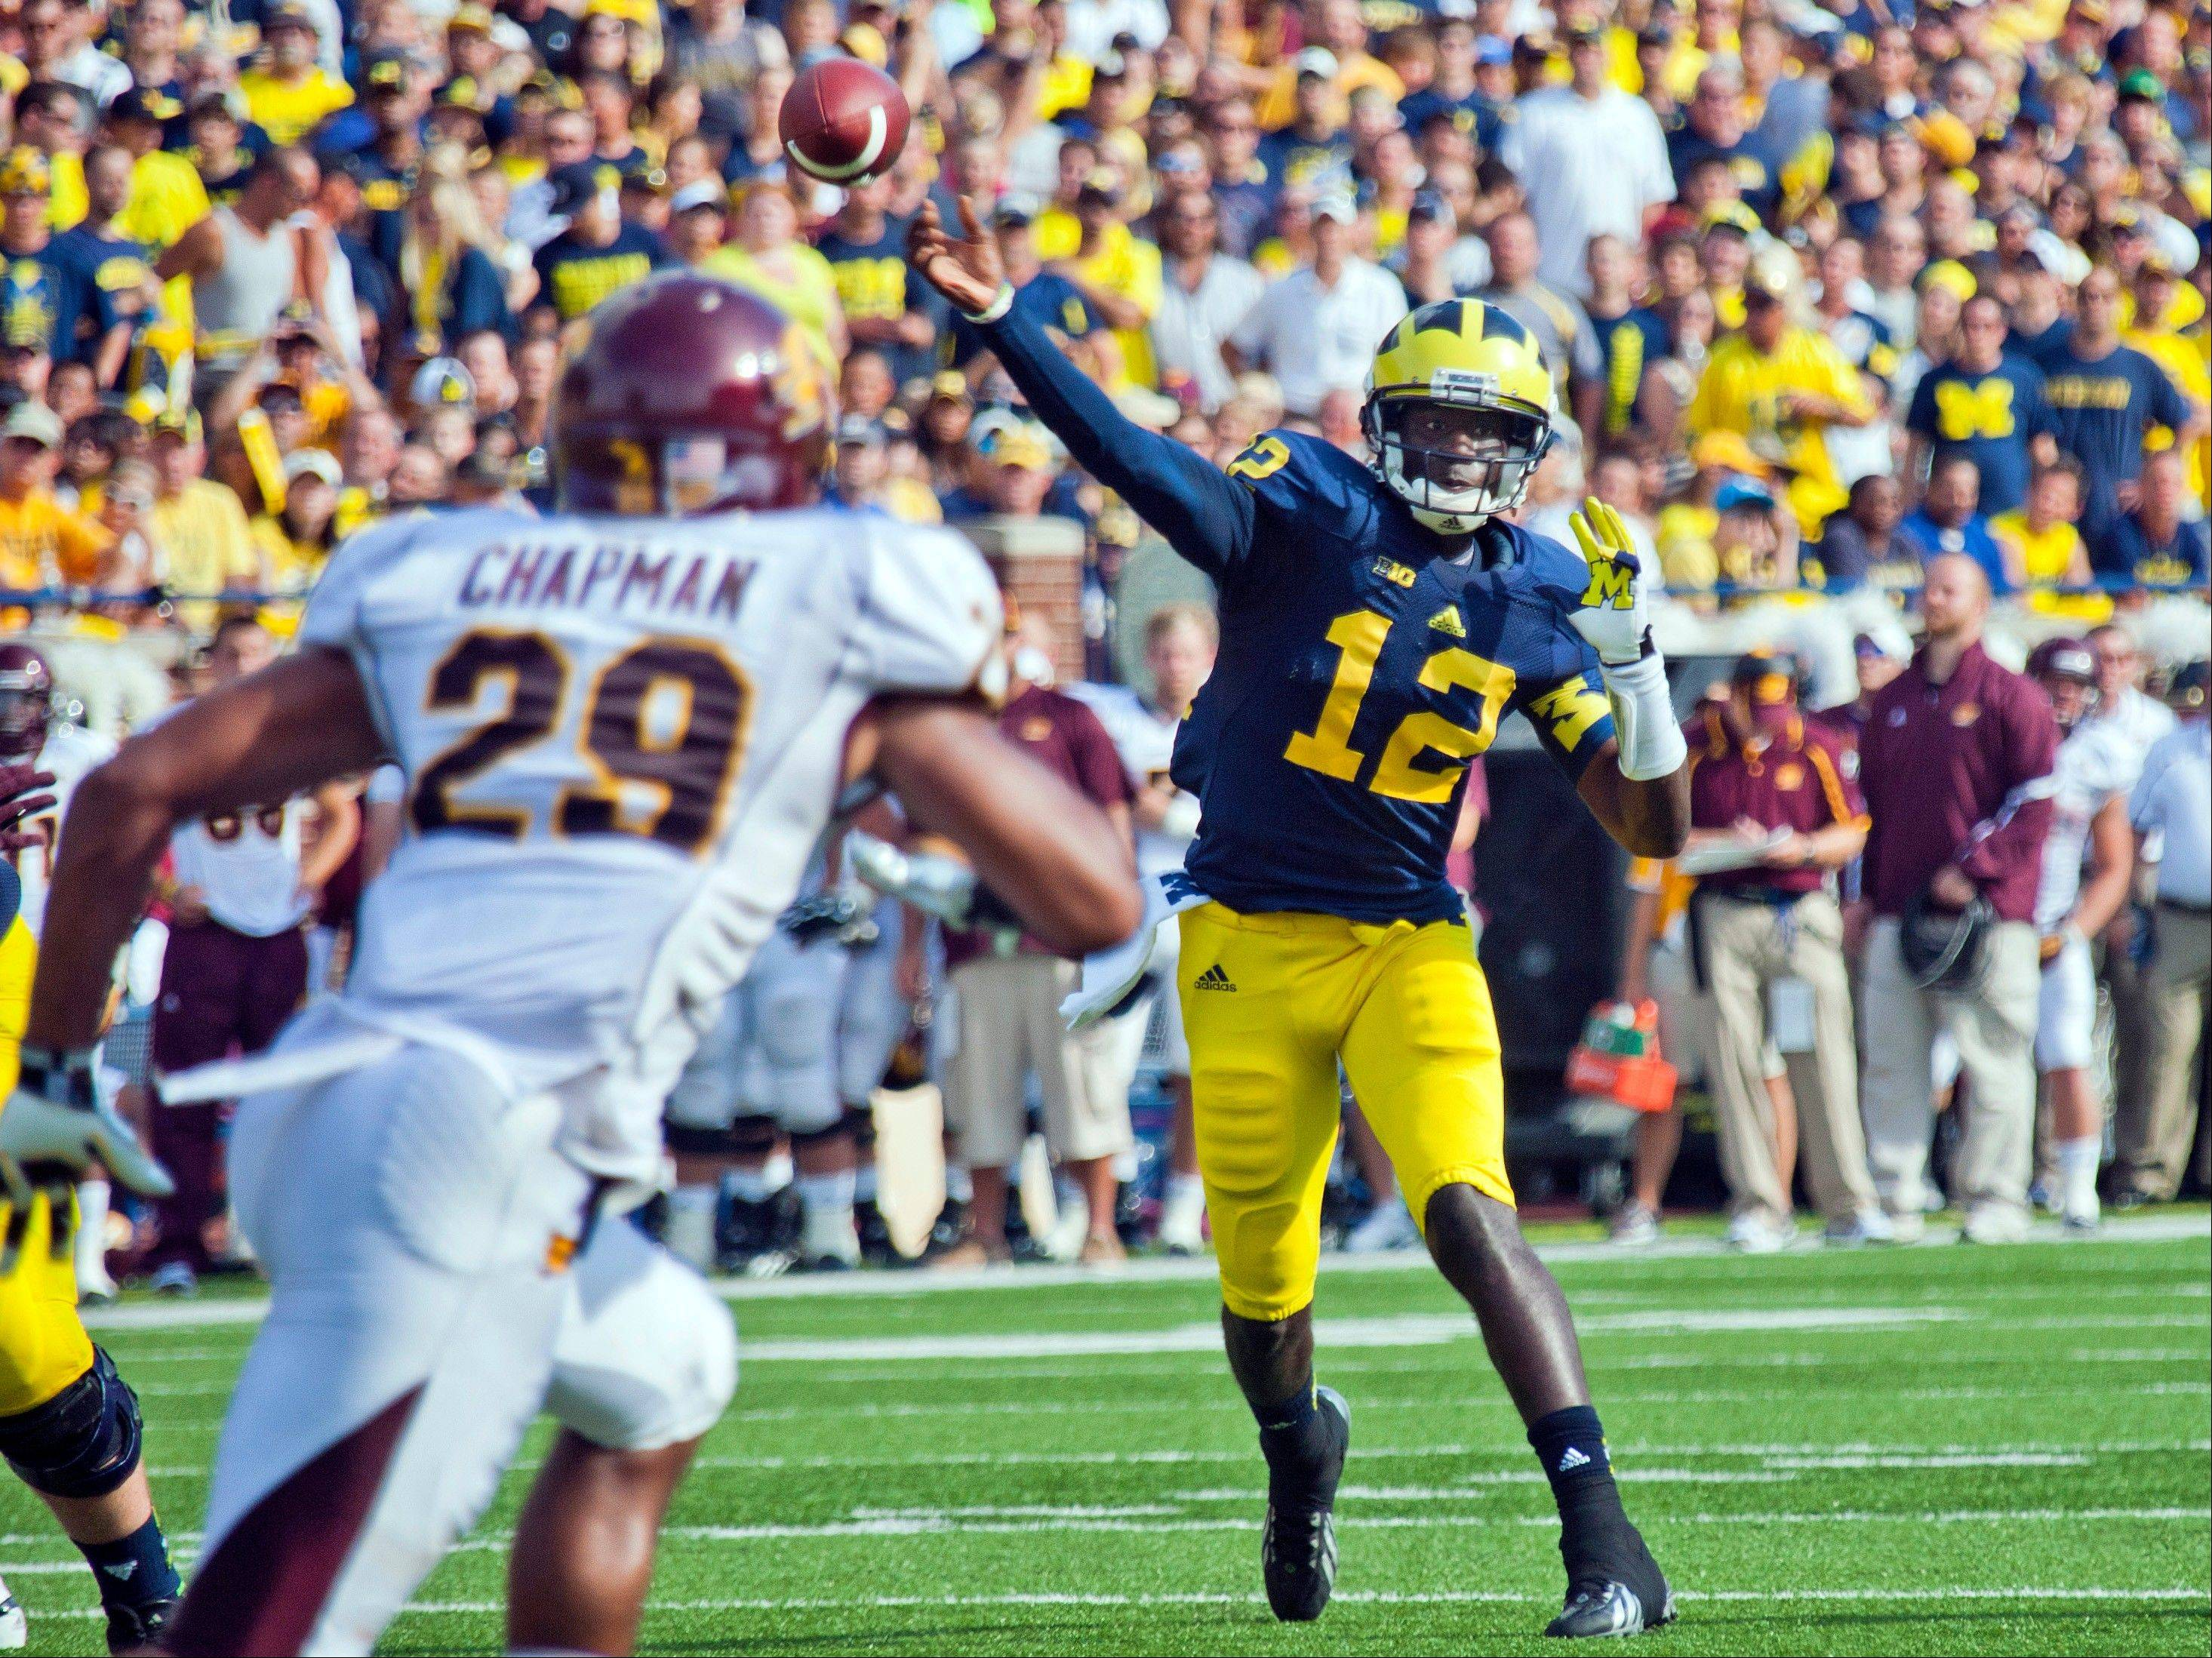 Michigan quarterback Devin Gardner (12) throws a touchdown pass into coverage in the second quarter of an NCAA college football game Saturday against Central Michigan in Ann Arbor, Mich.